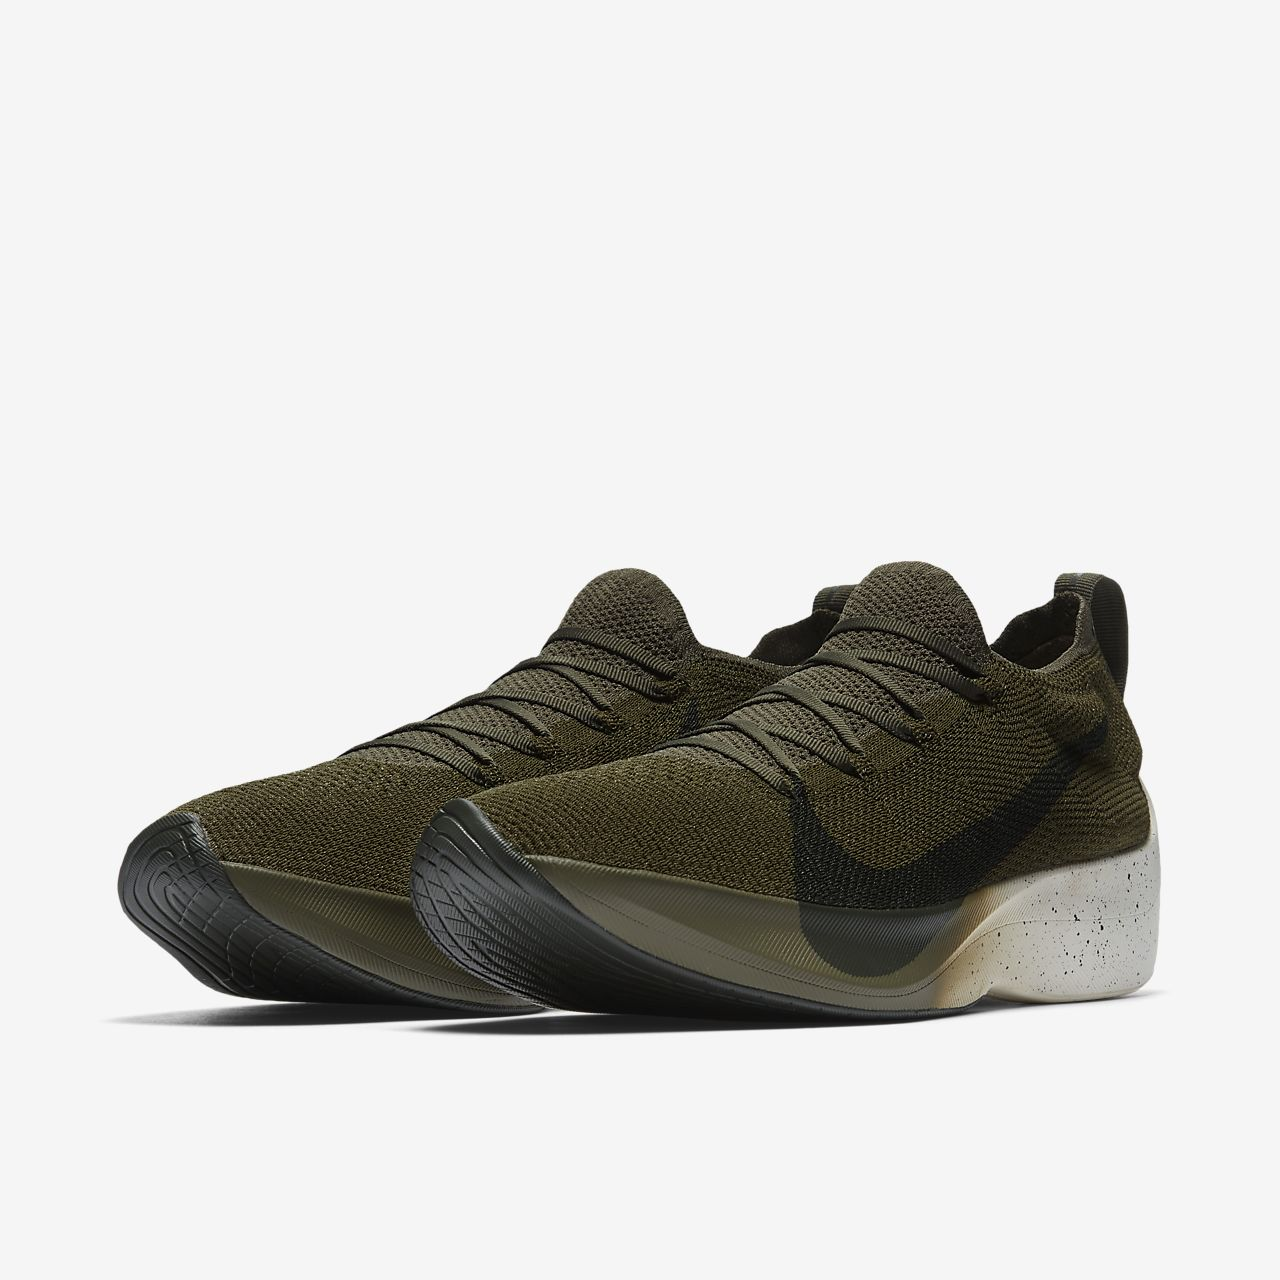 Nike React Vapor Street Flyknit Sneakers sale fashionable nvxO7t